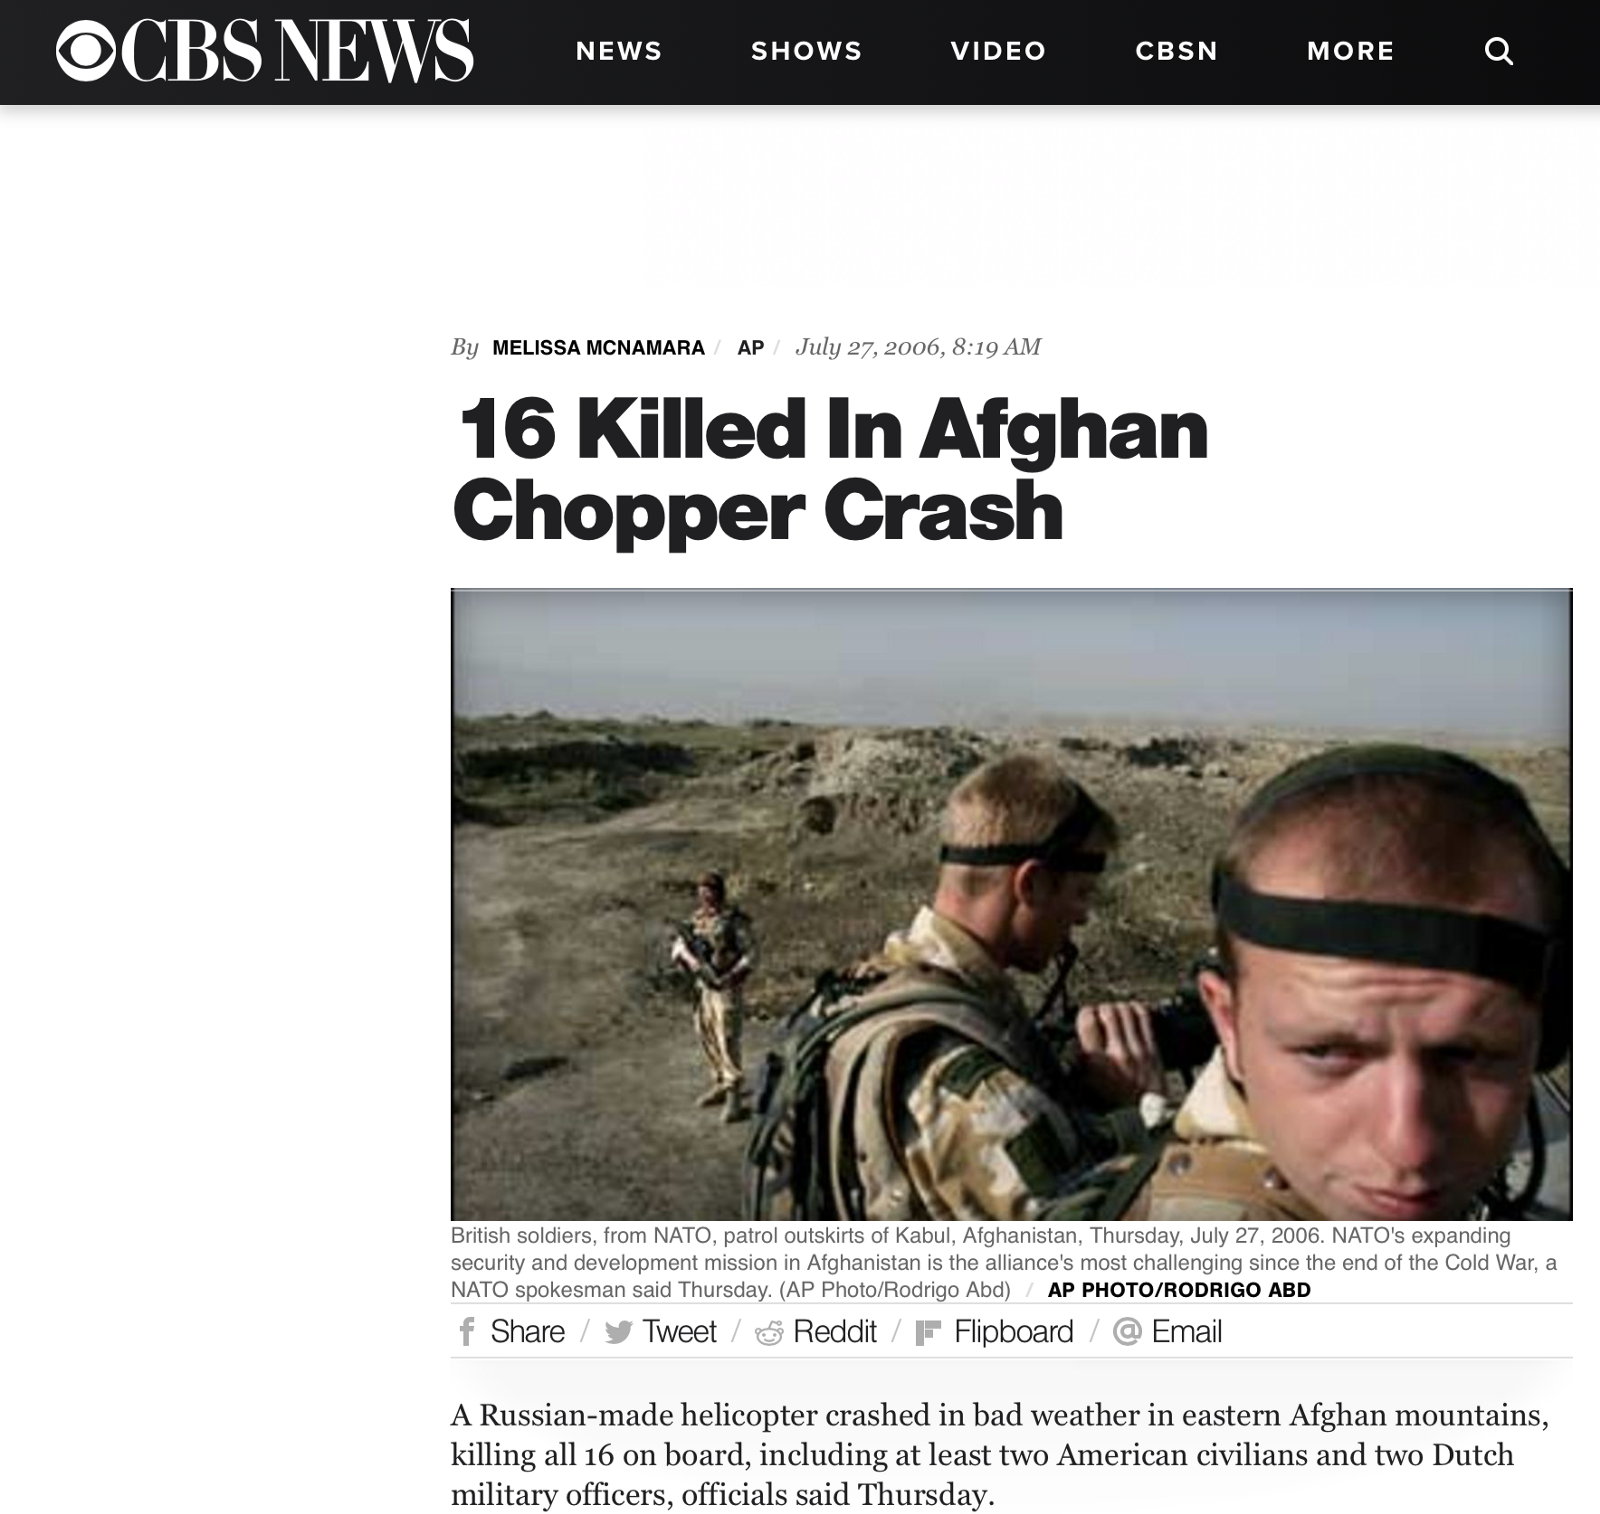 CBS NEWS reported how Kimberly's father company Tryco crashed a Soviet Helicopter and all people aboard got dead. The court case in USA was going on unsuccesfully up until 2013 or so.